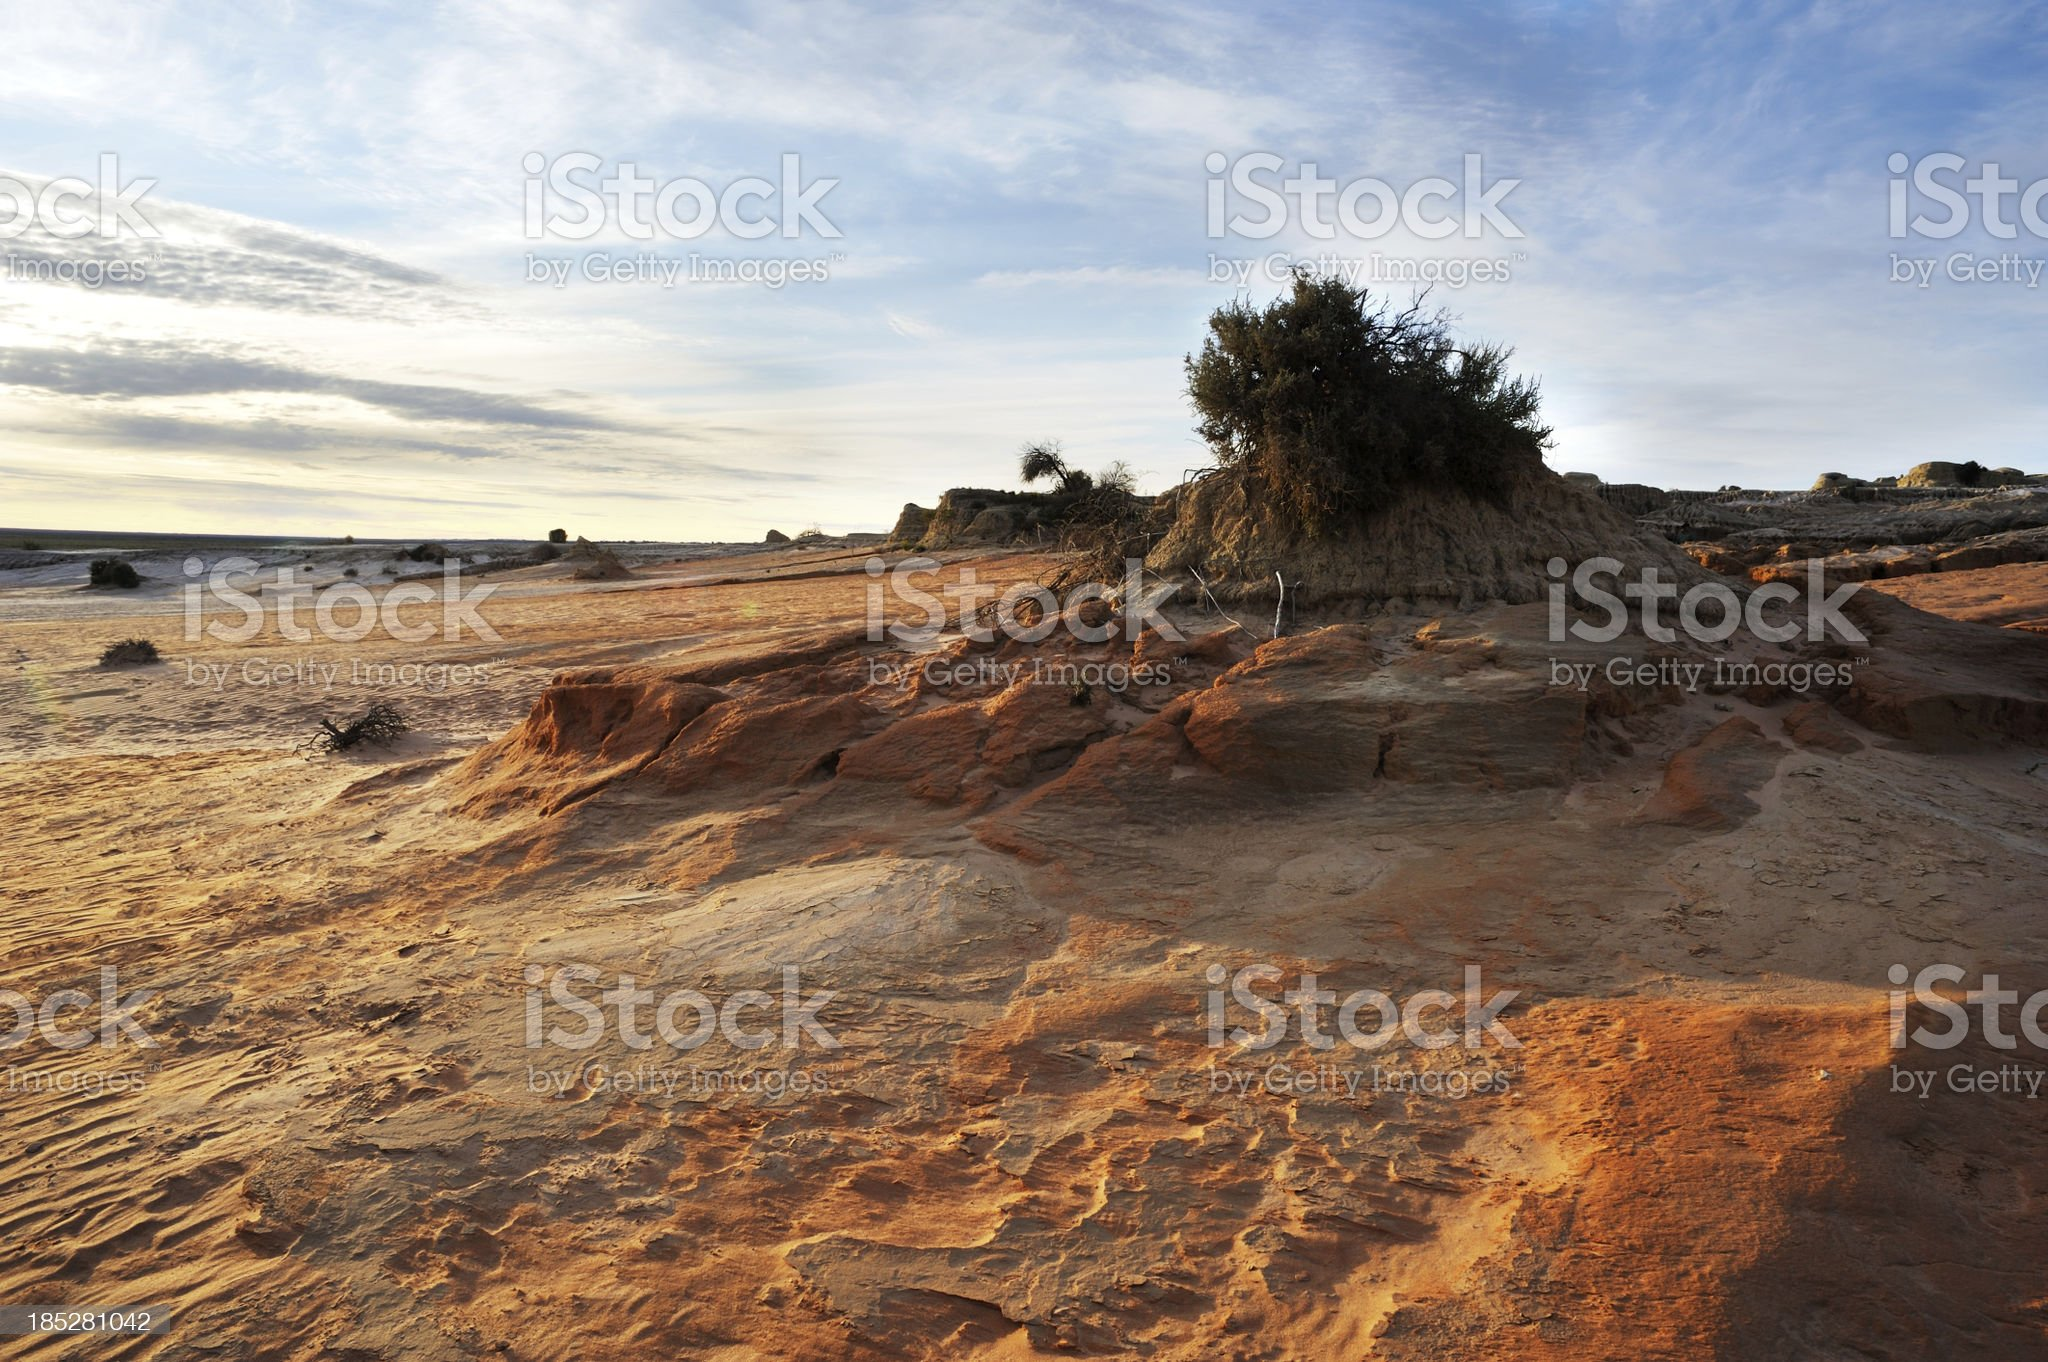 Australia Outback, royalty-free stock photo